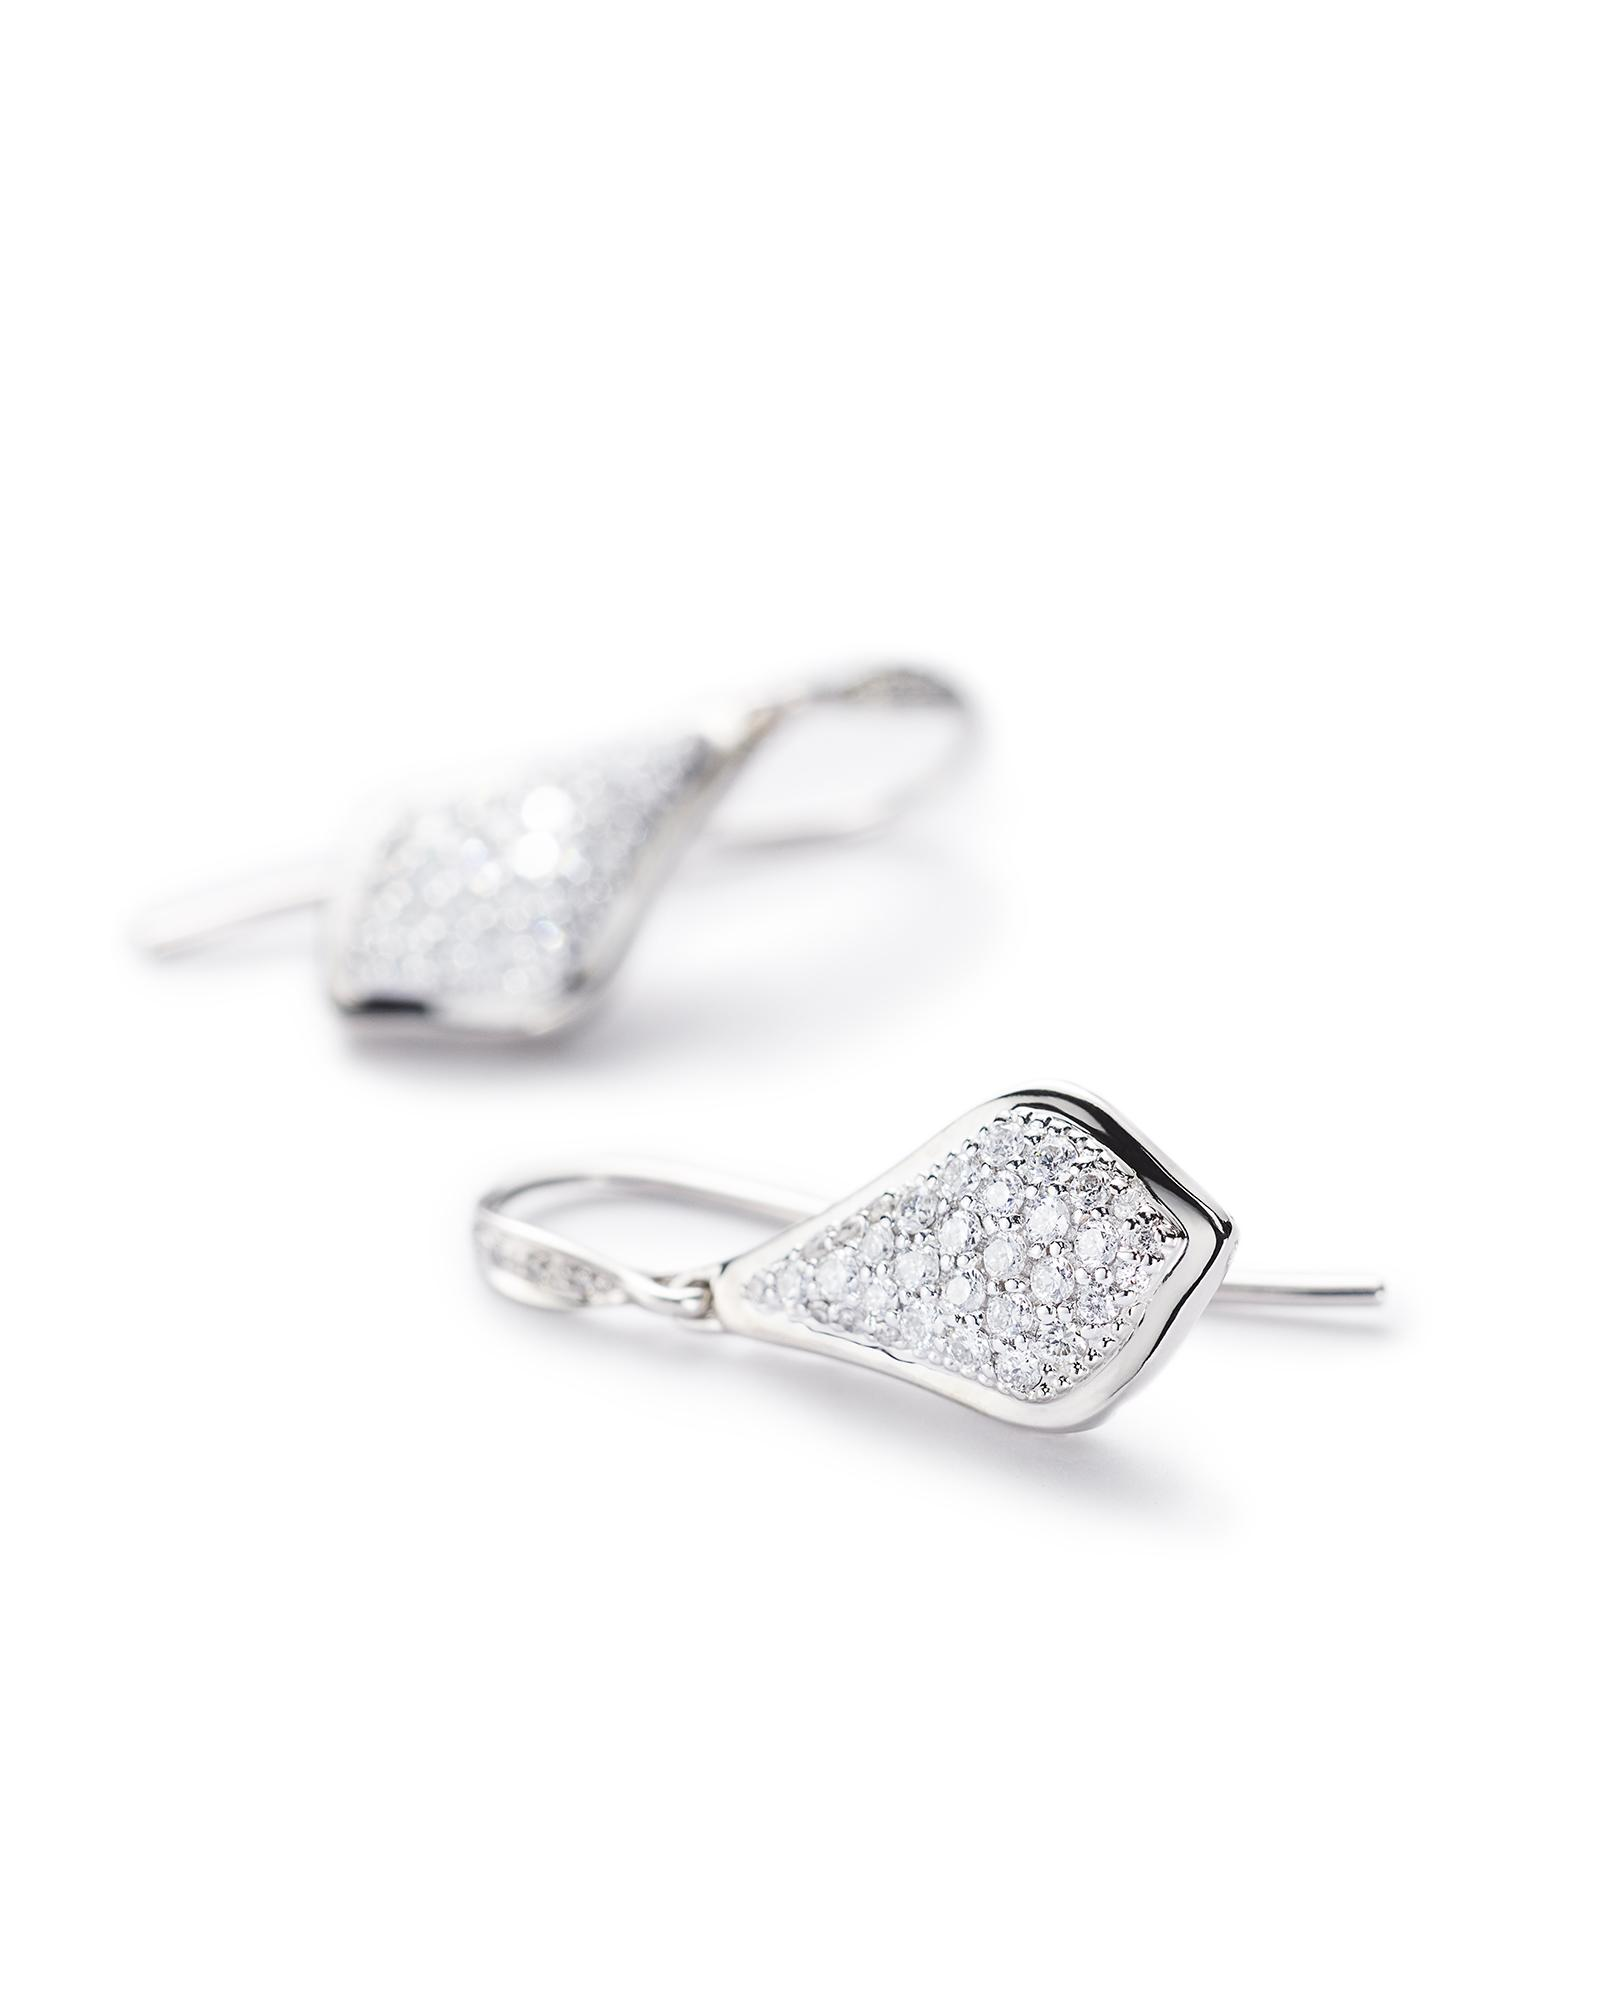 Lexi Drop Earrings in Pave Diamond and 14k White Gold